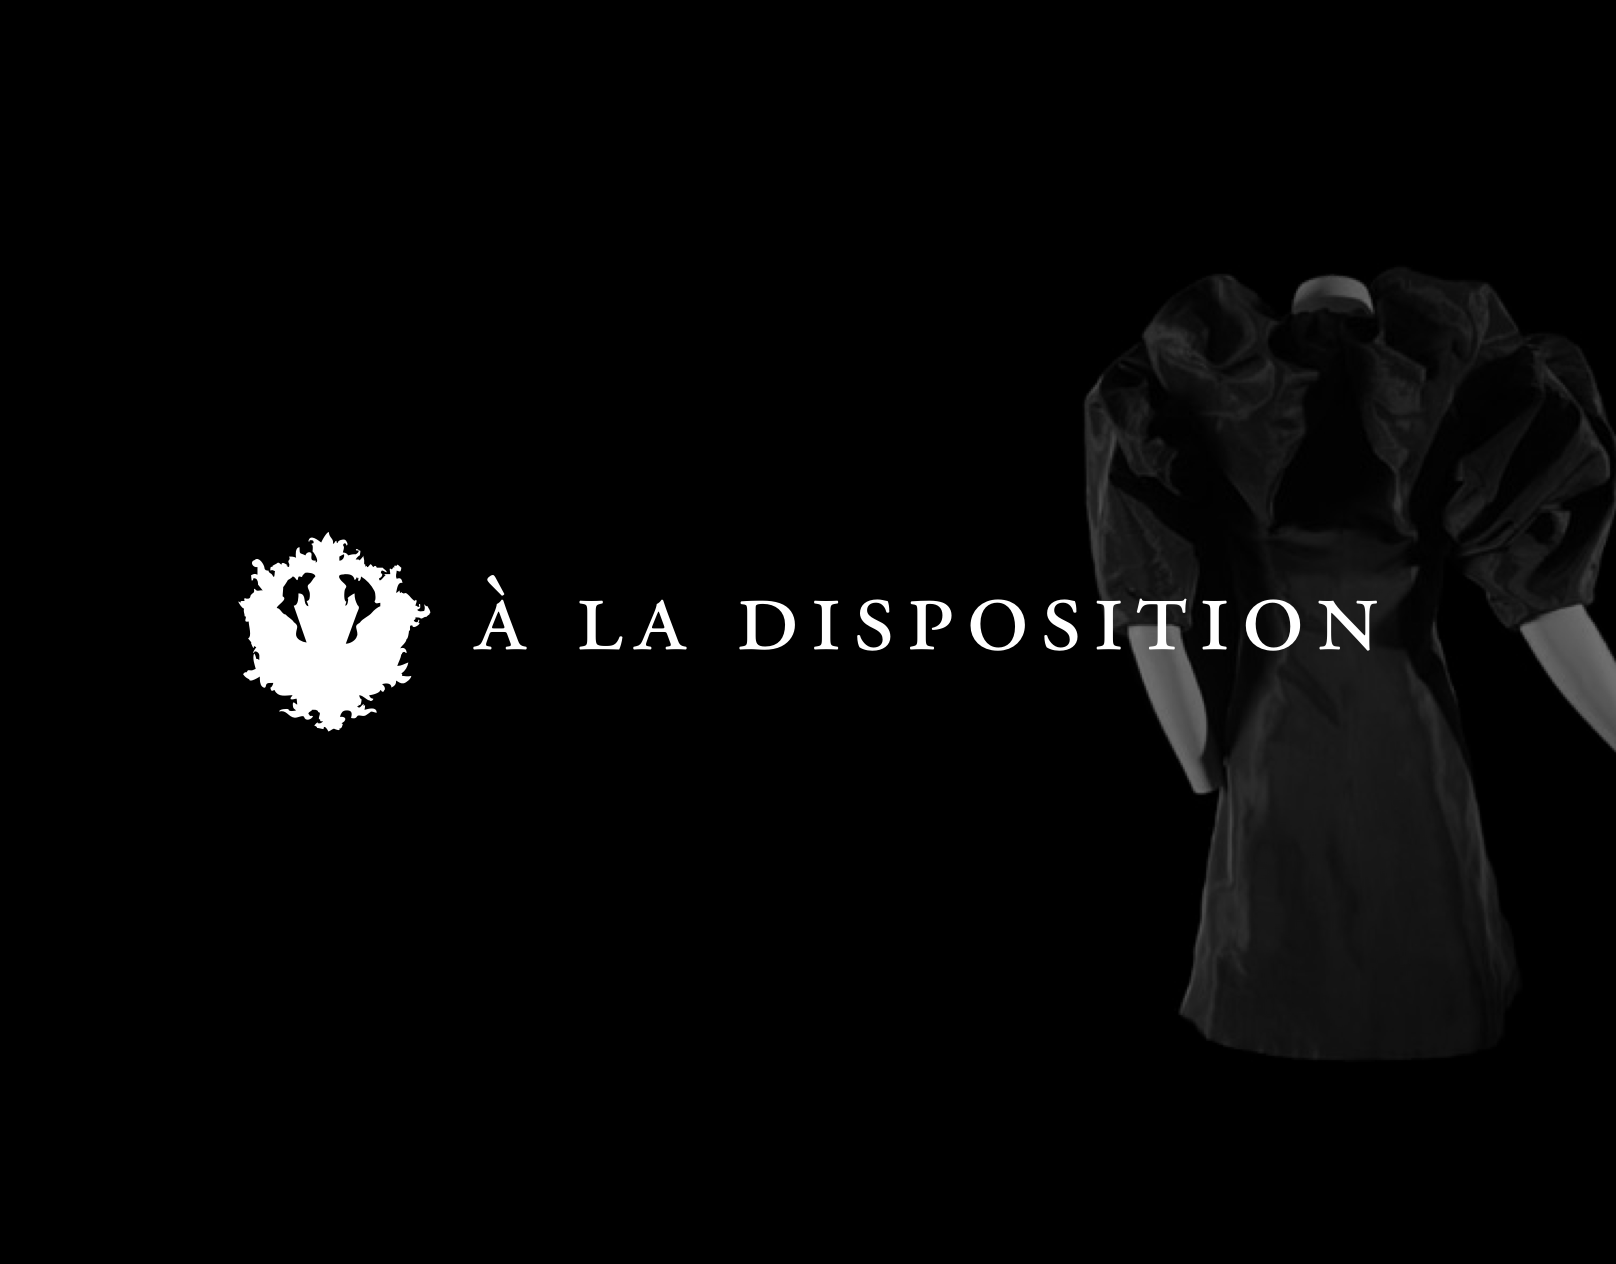 à la disposition